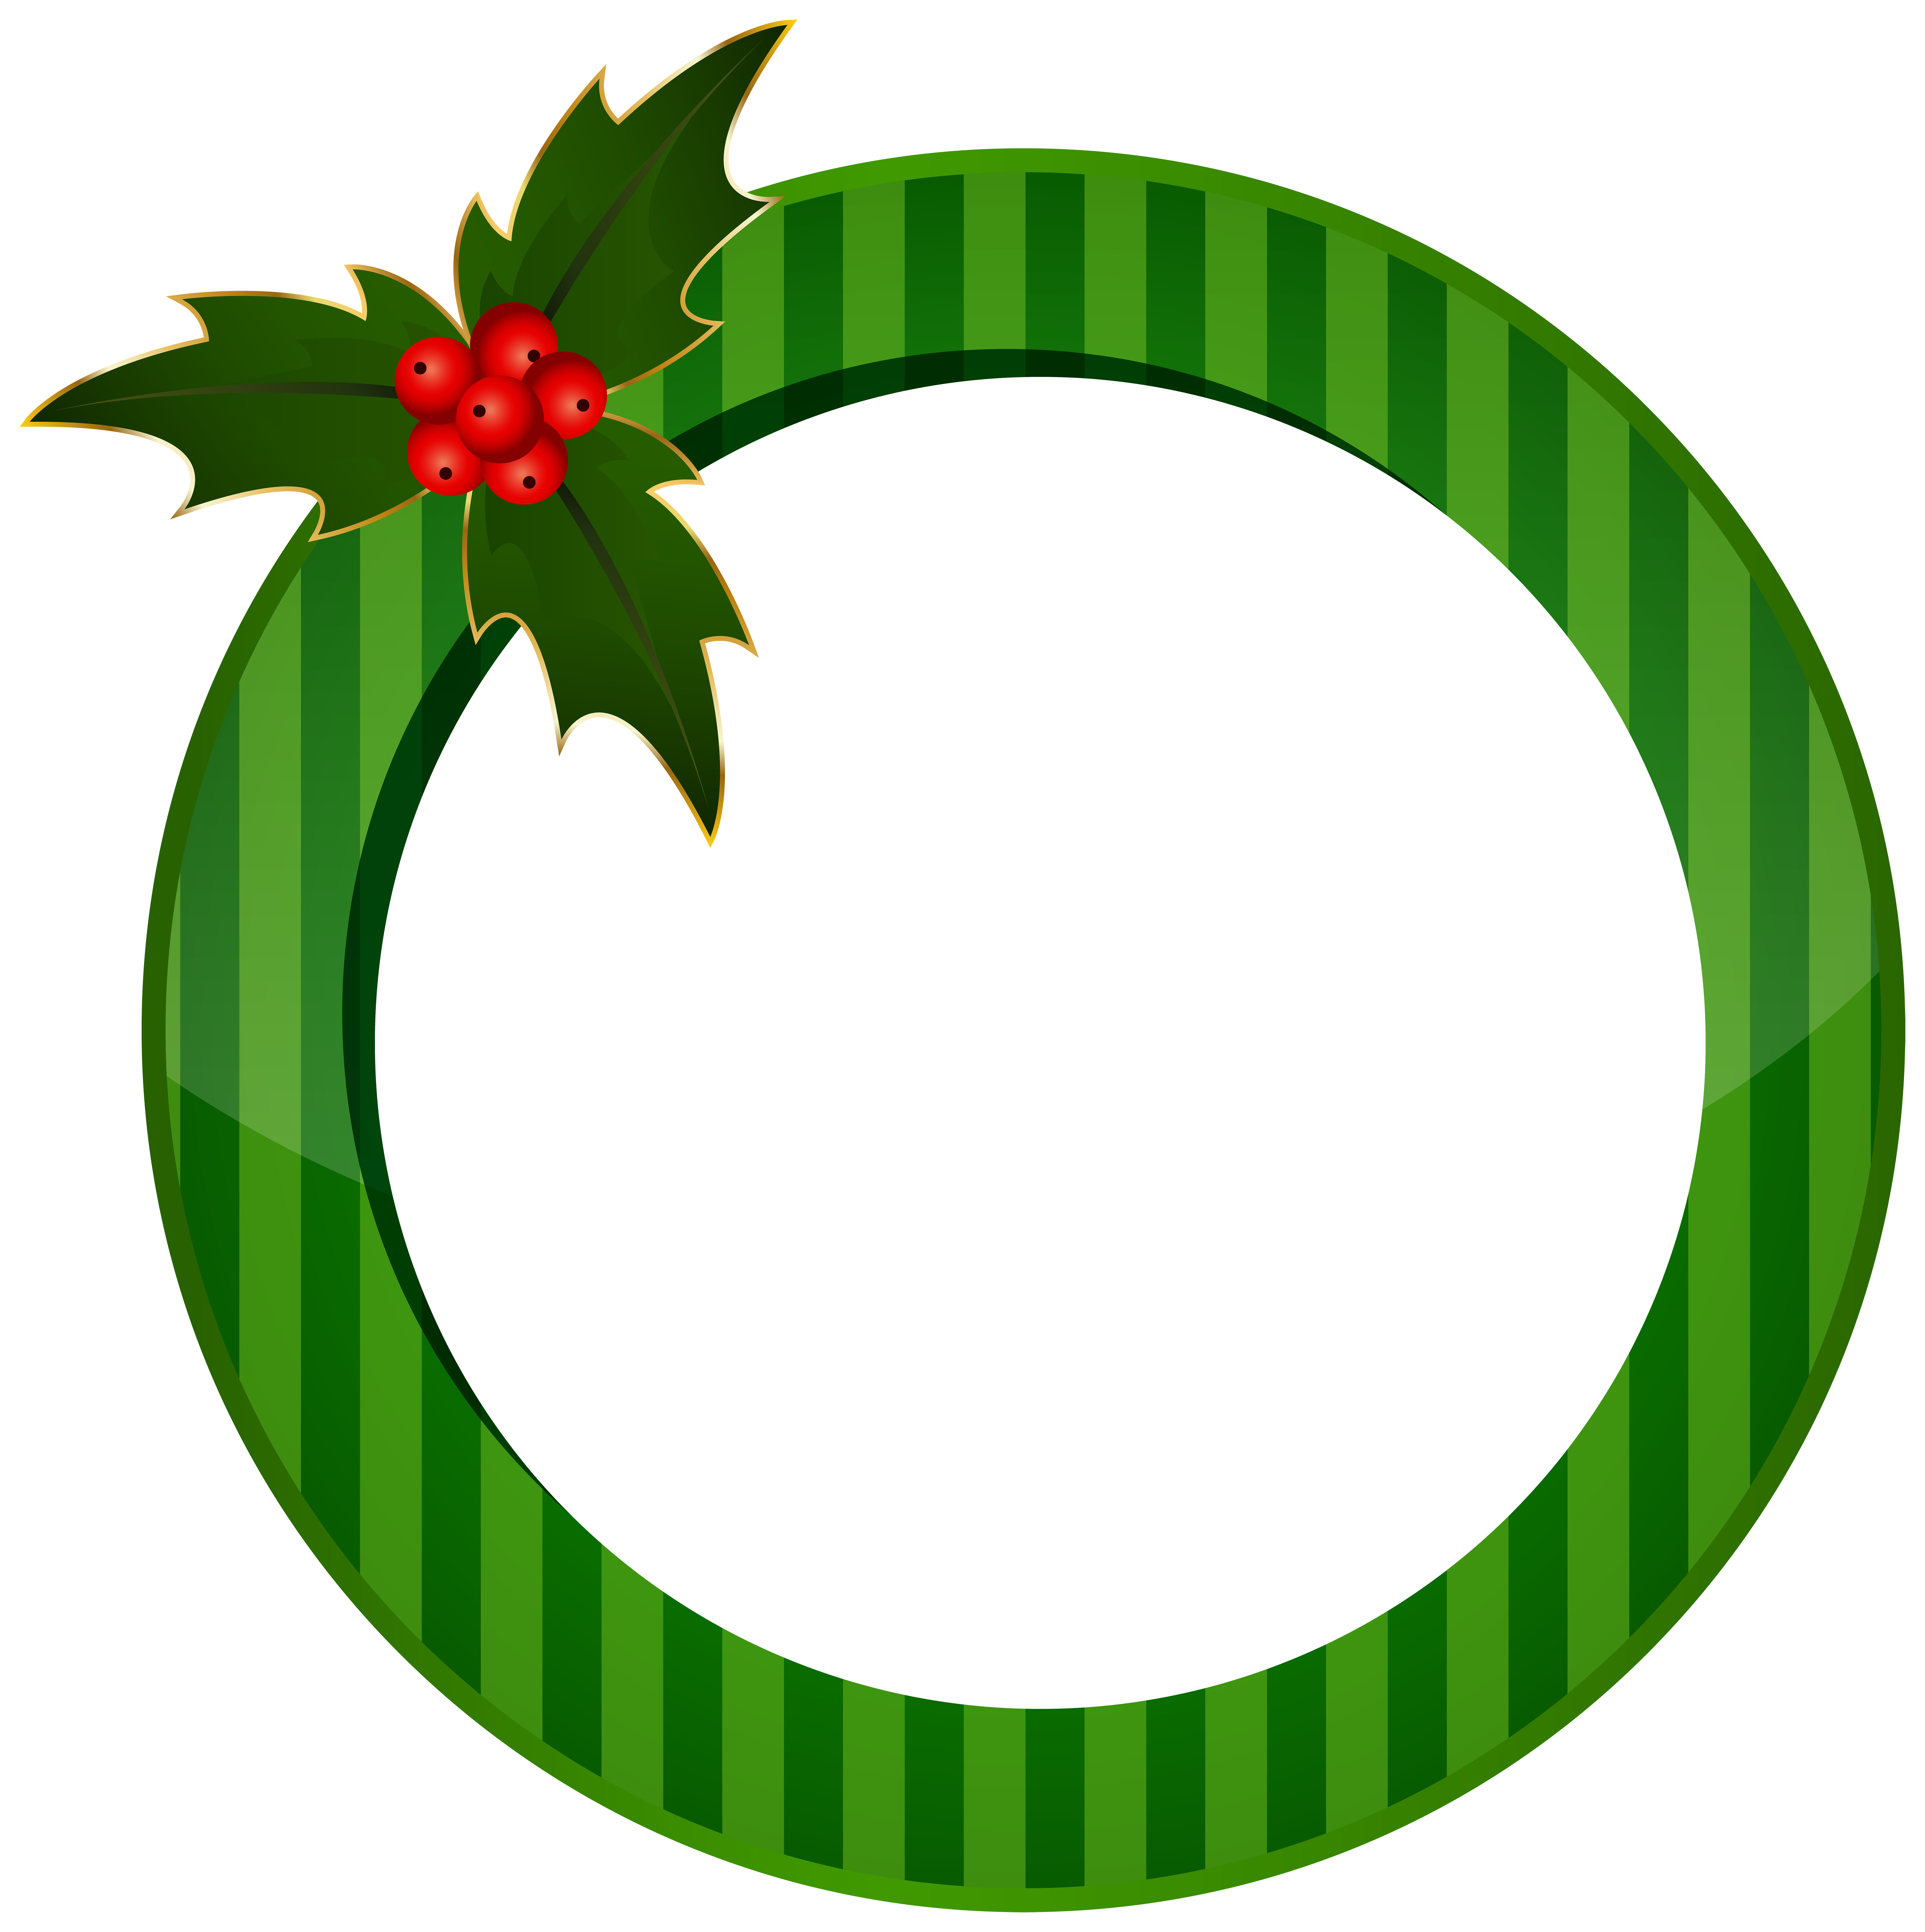 Round green clipart clipart black and white download Christmas Round Green Frame Transparent Image | Gallery ... clipart black and white download